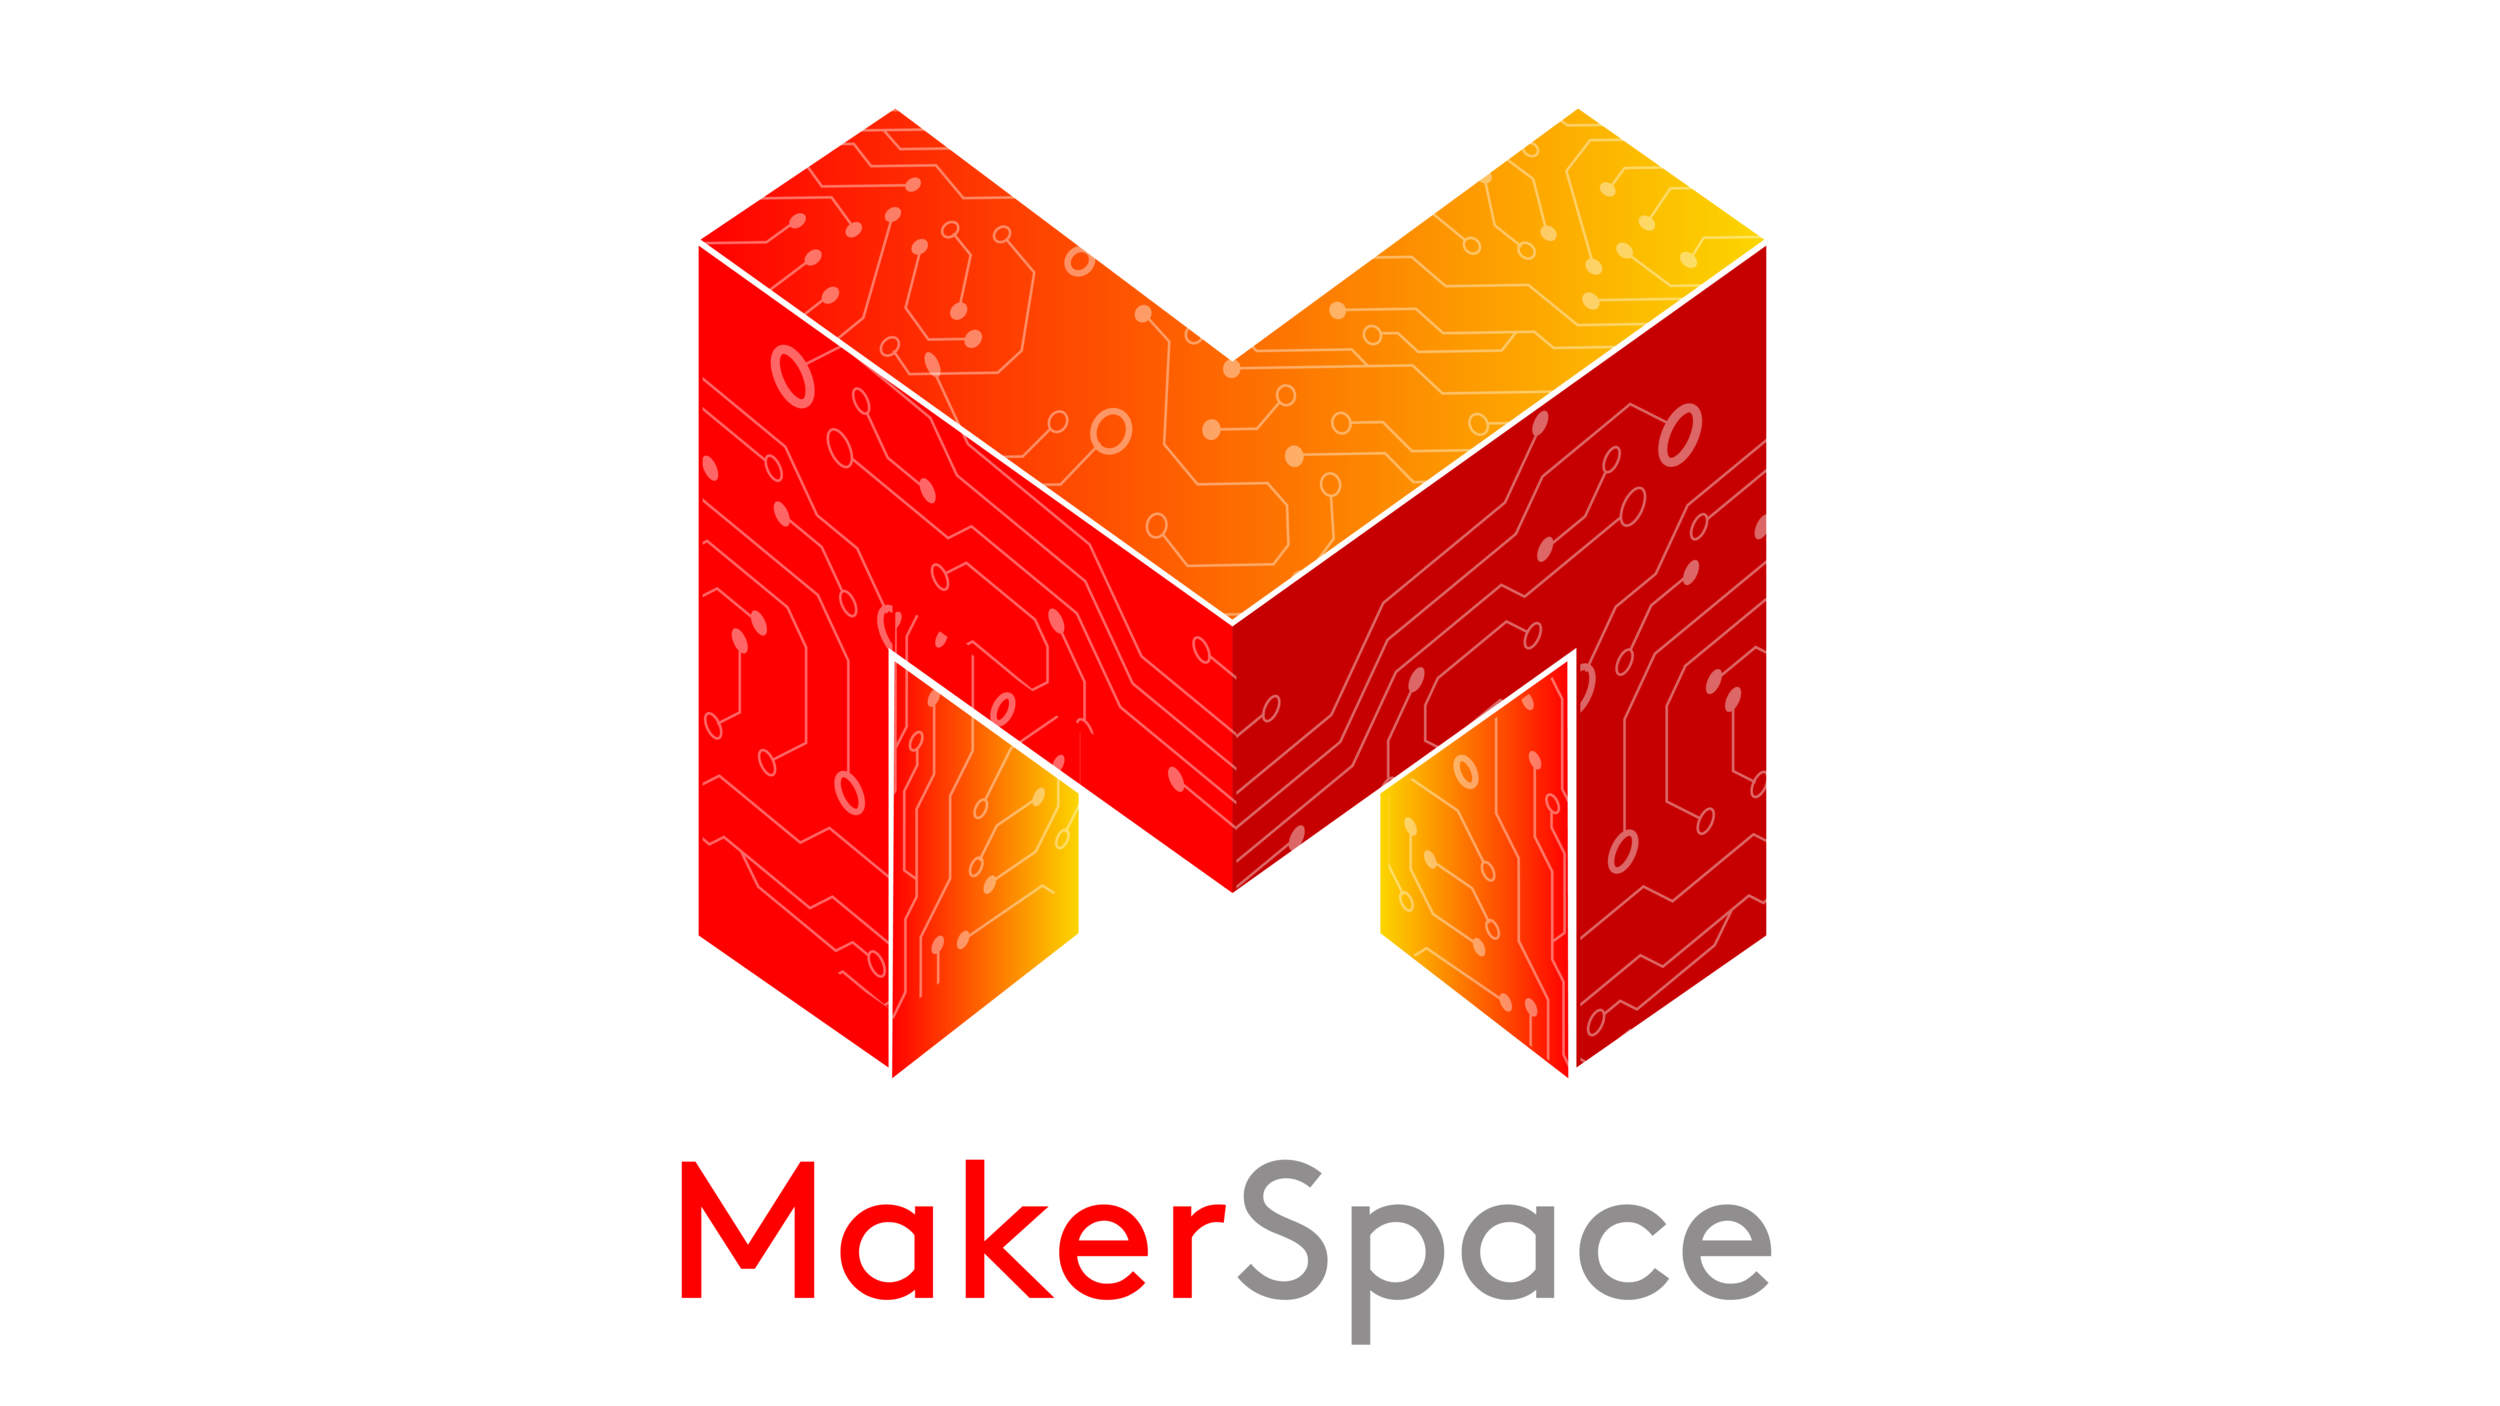 Sterling Sanders, Maker Space V6